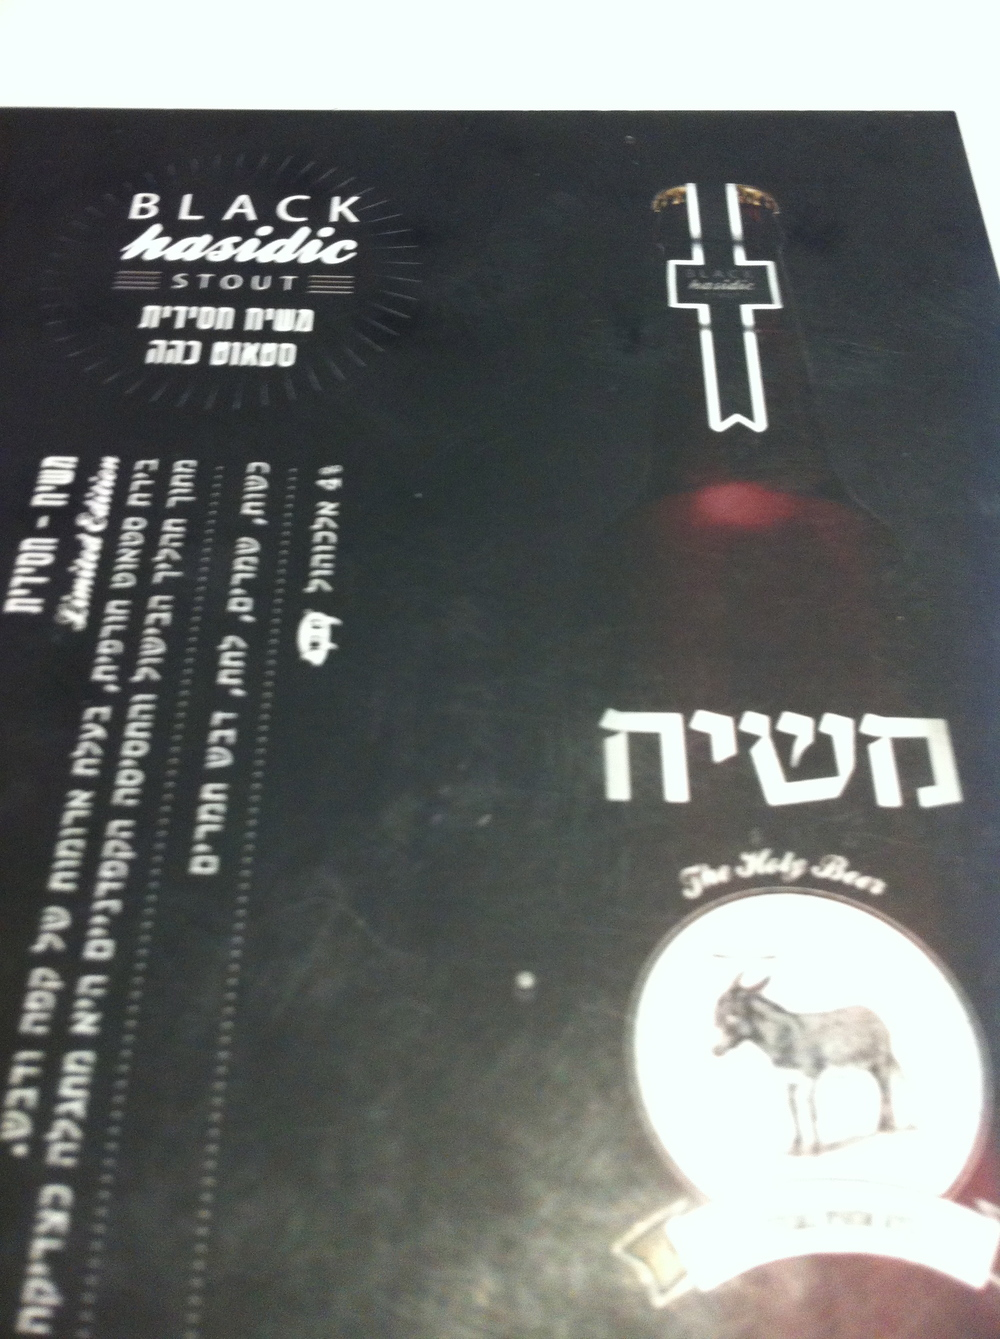 The Stout - Hassidic beer